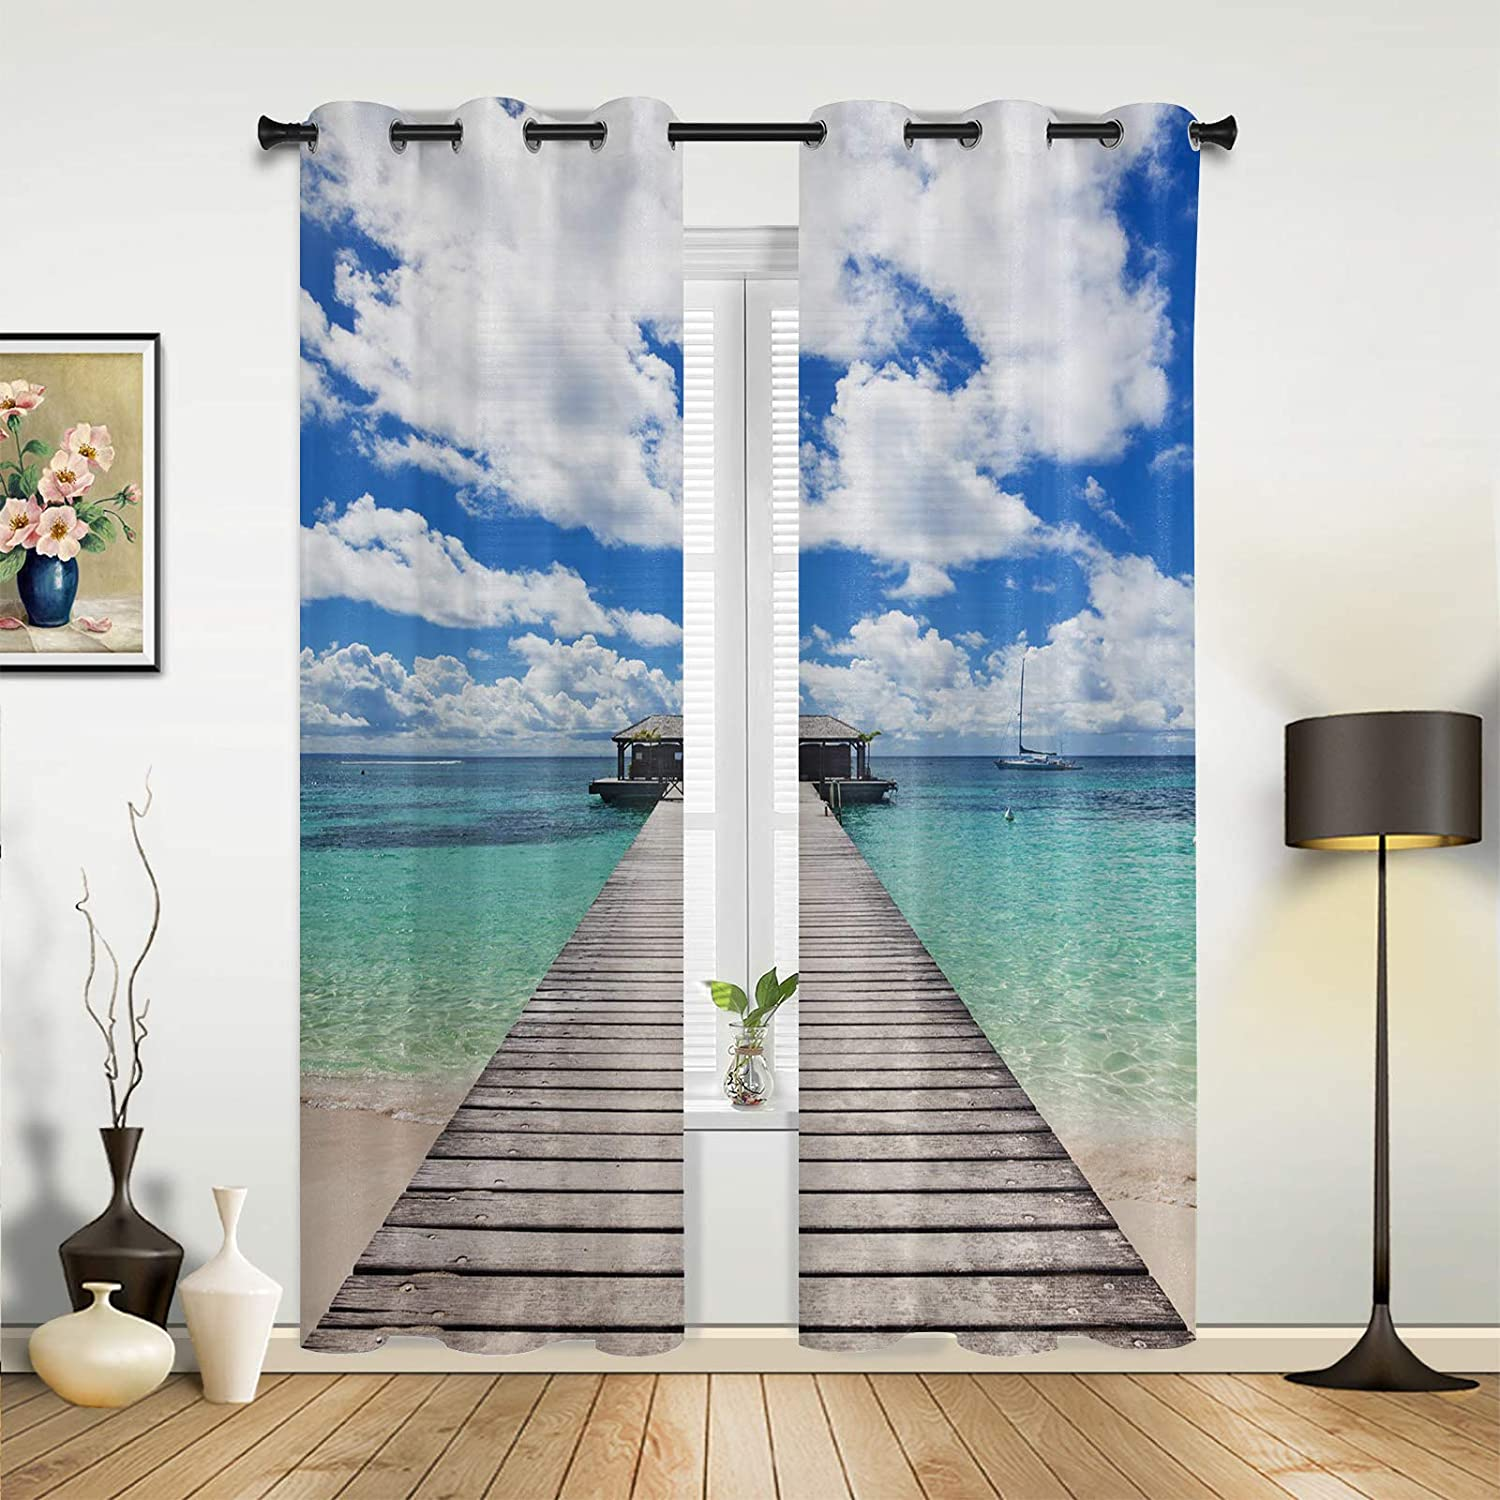 Beauty Decor Window Sheer Curtains excellence Ocean Living Bedroom Room 67% OFF of fixed price for